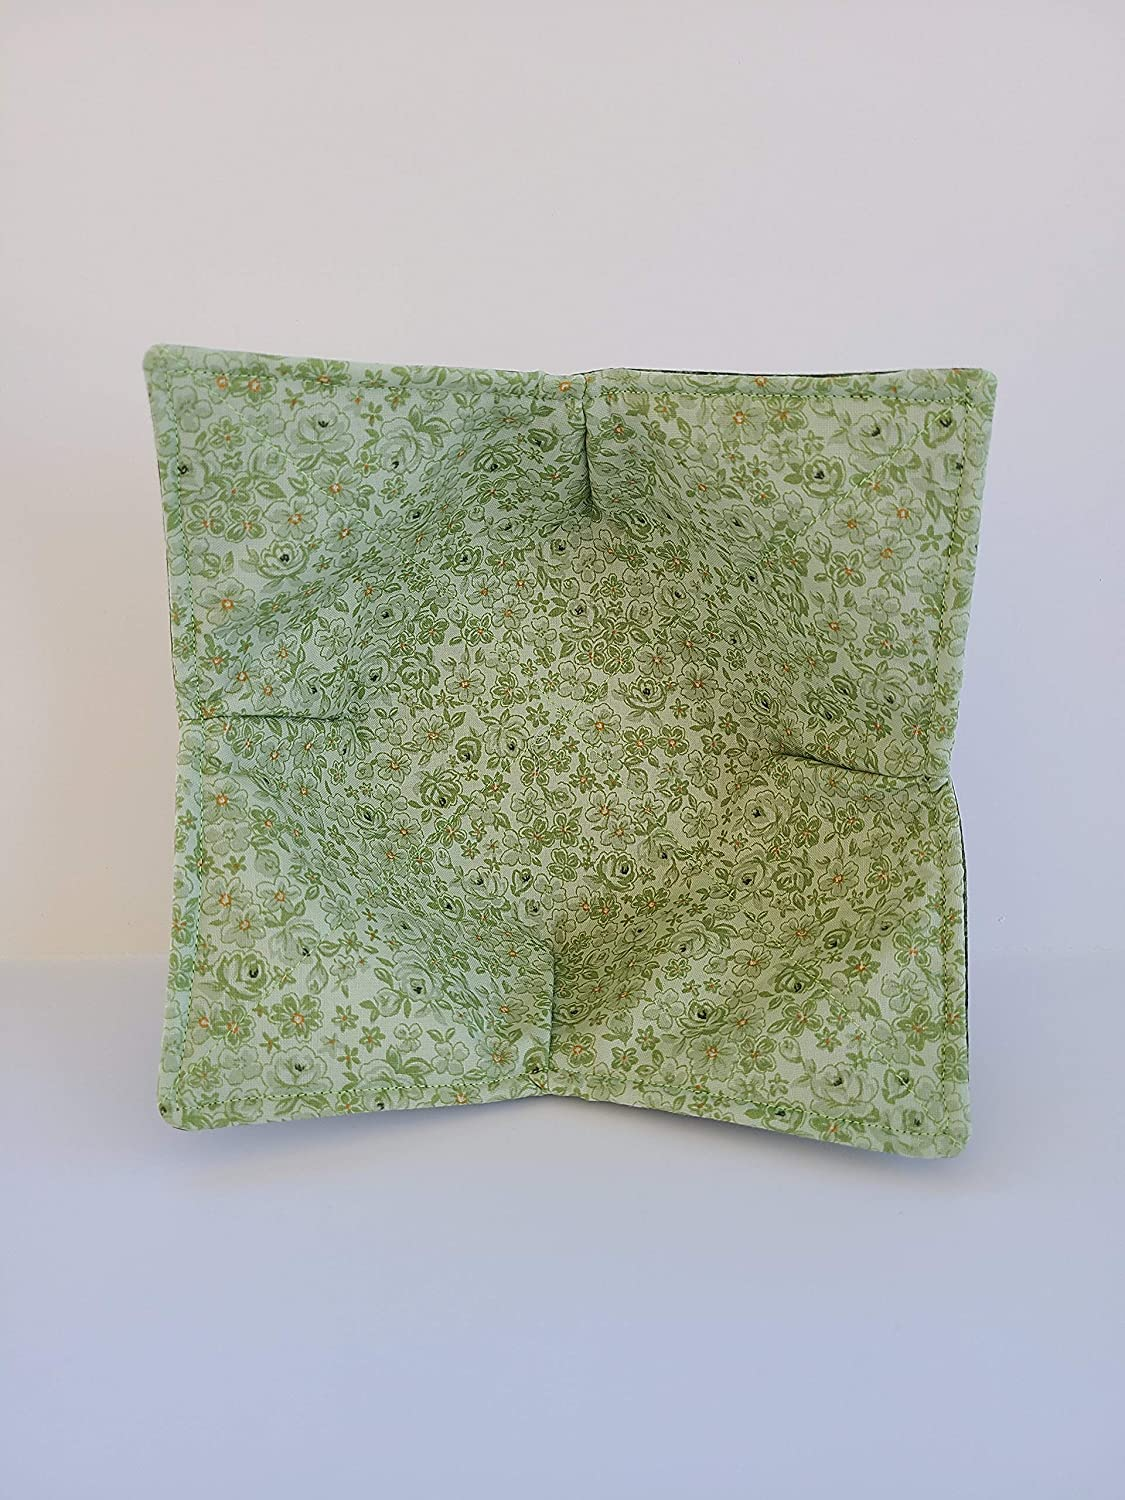 Tree Leaves Reversible Quilted Bowl Cozy Holder Bowl Buddies /… Microwavable Soup Bowl Cozy Housewarming Gift